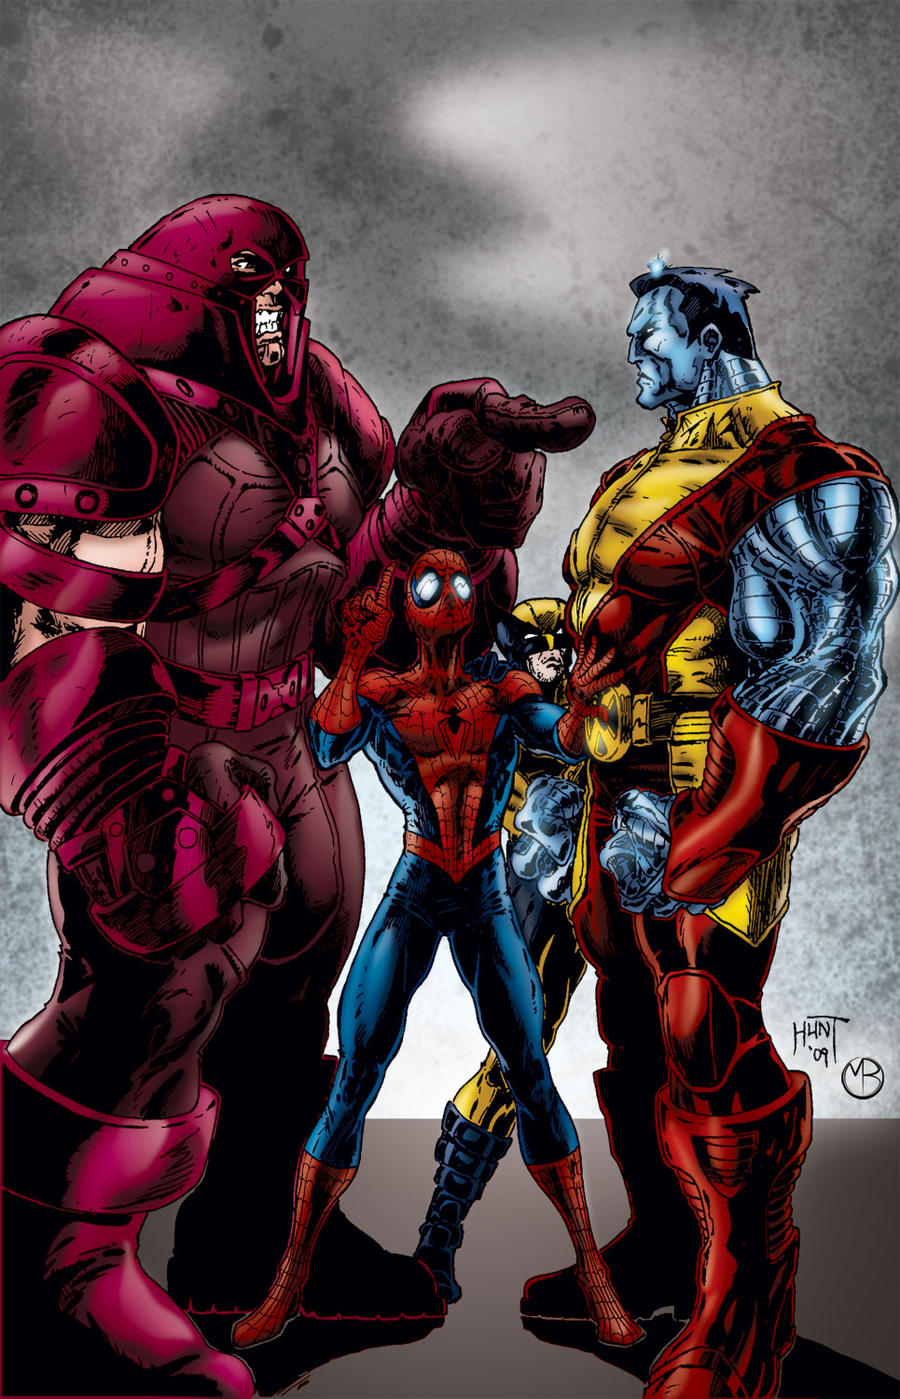 colossus marvel x men - photo #47